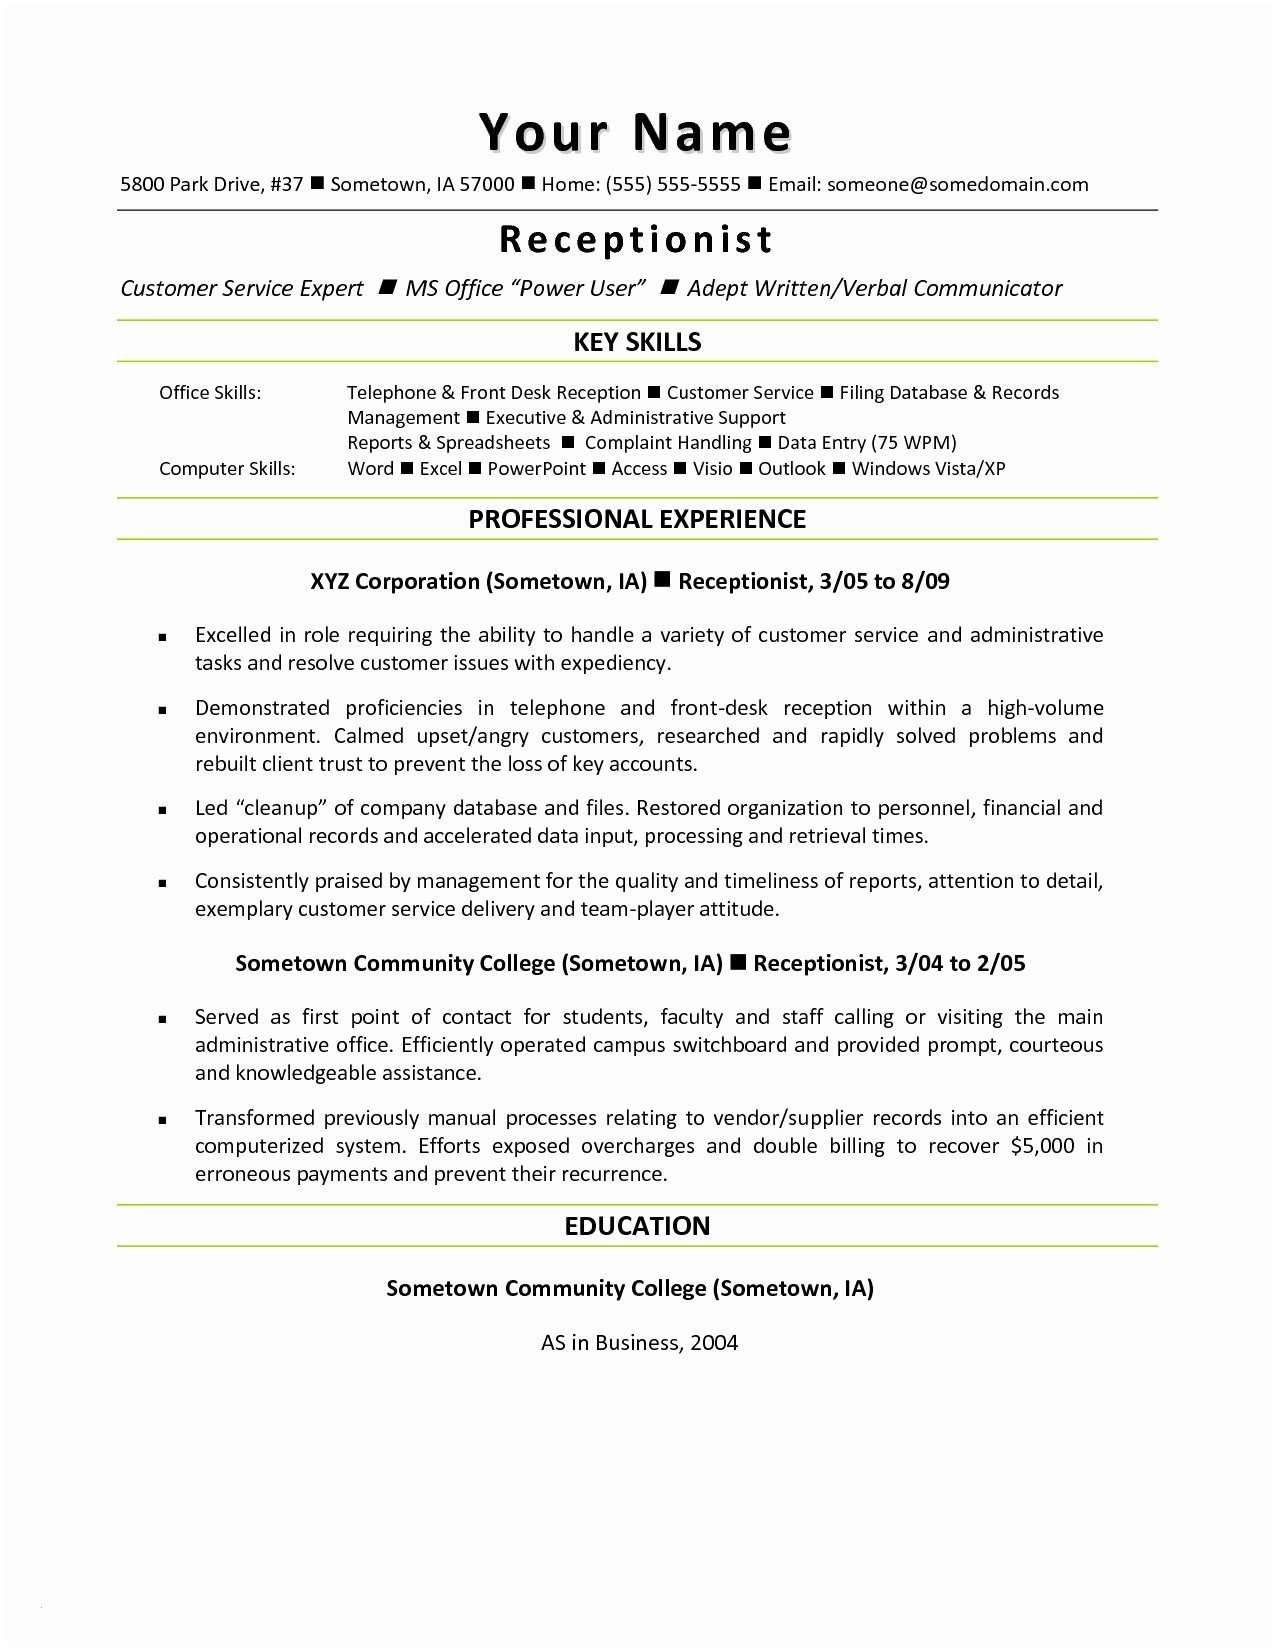 consultant resume template example-Consulting Resume Template Awesome Resume Mail format Sample Fresh Beautiful Od Consultant Cover Letter 6-k